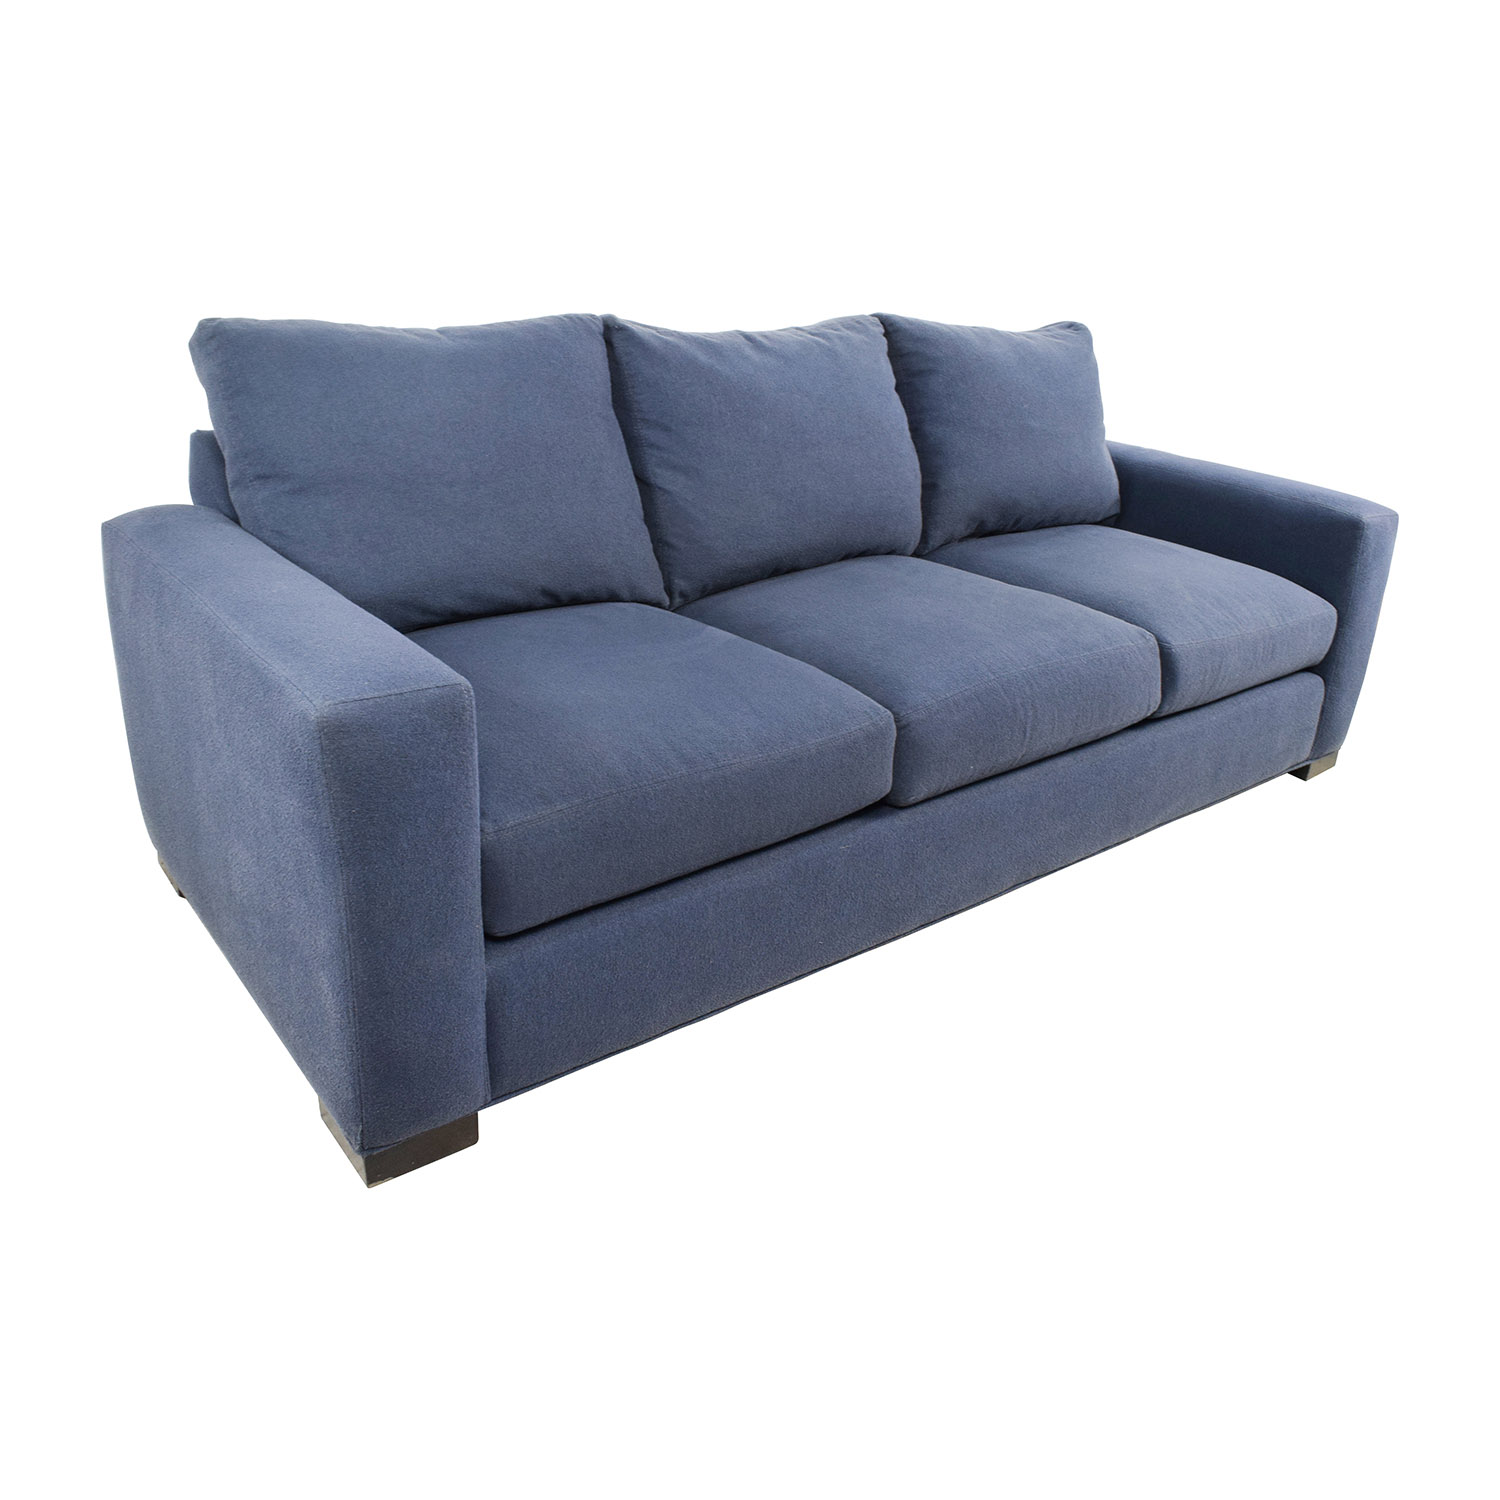 room and board sofas sectionals craigslist boston 54 off metro blue sofa